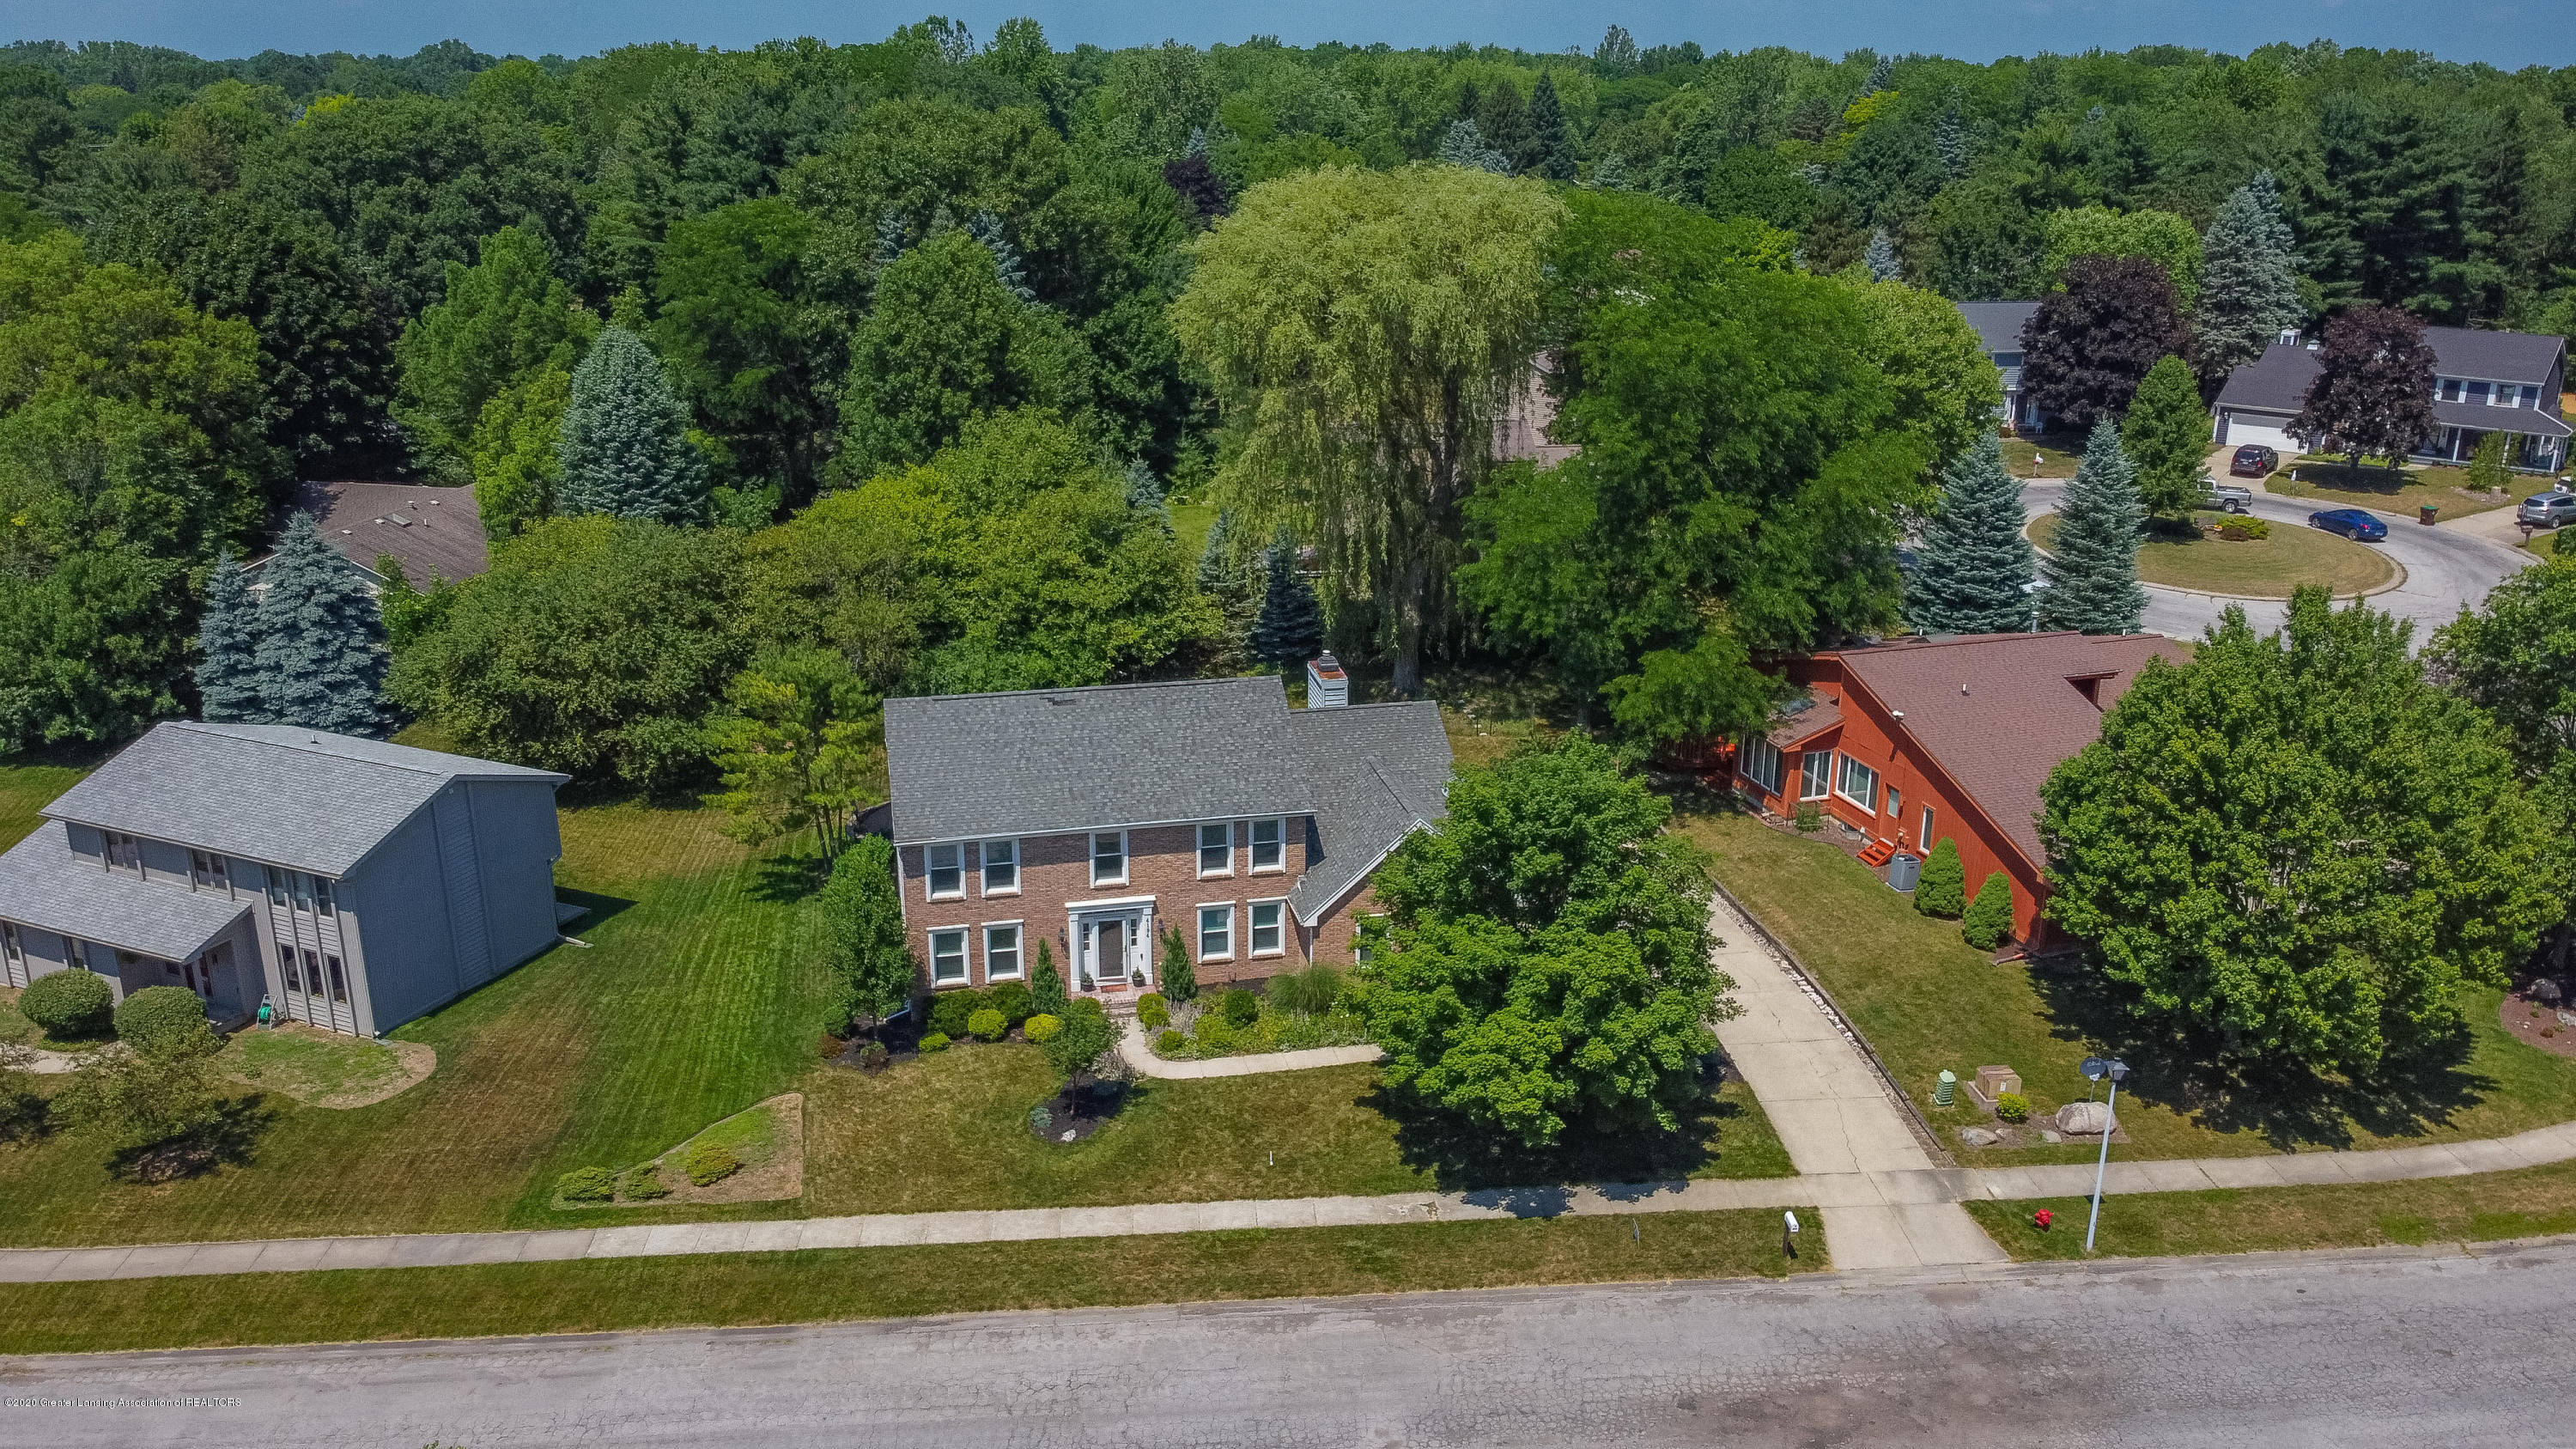 4194 Indian Glen Dr - Aerial View - 50